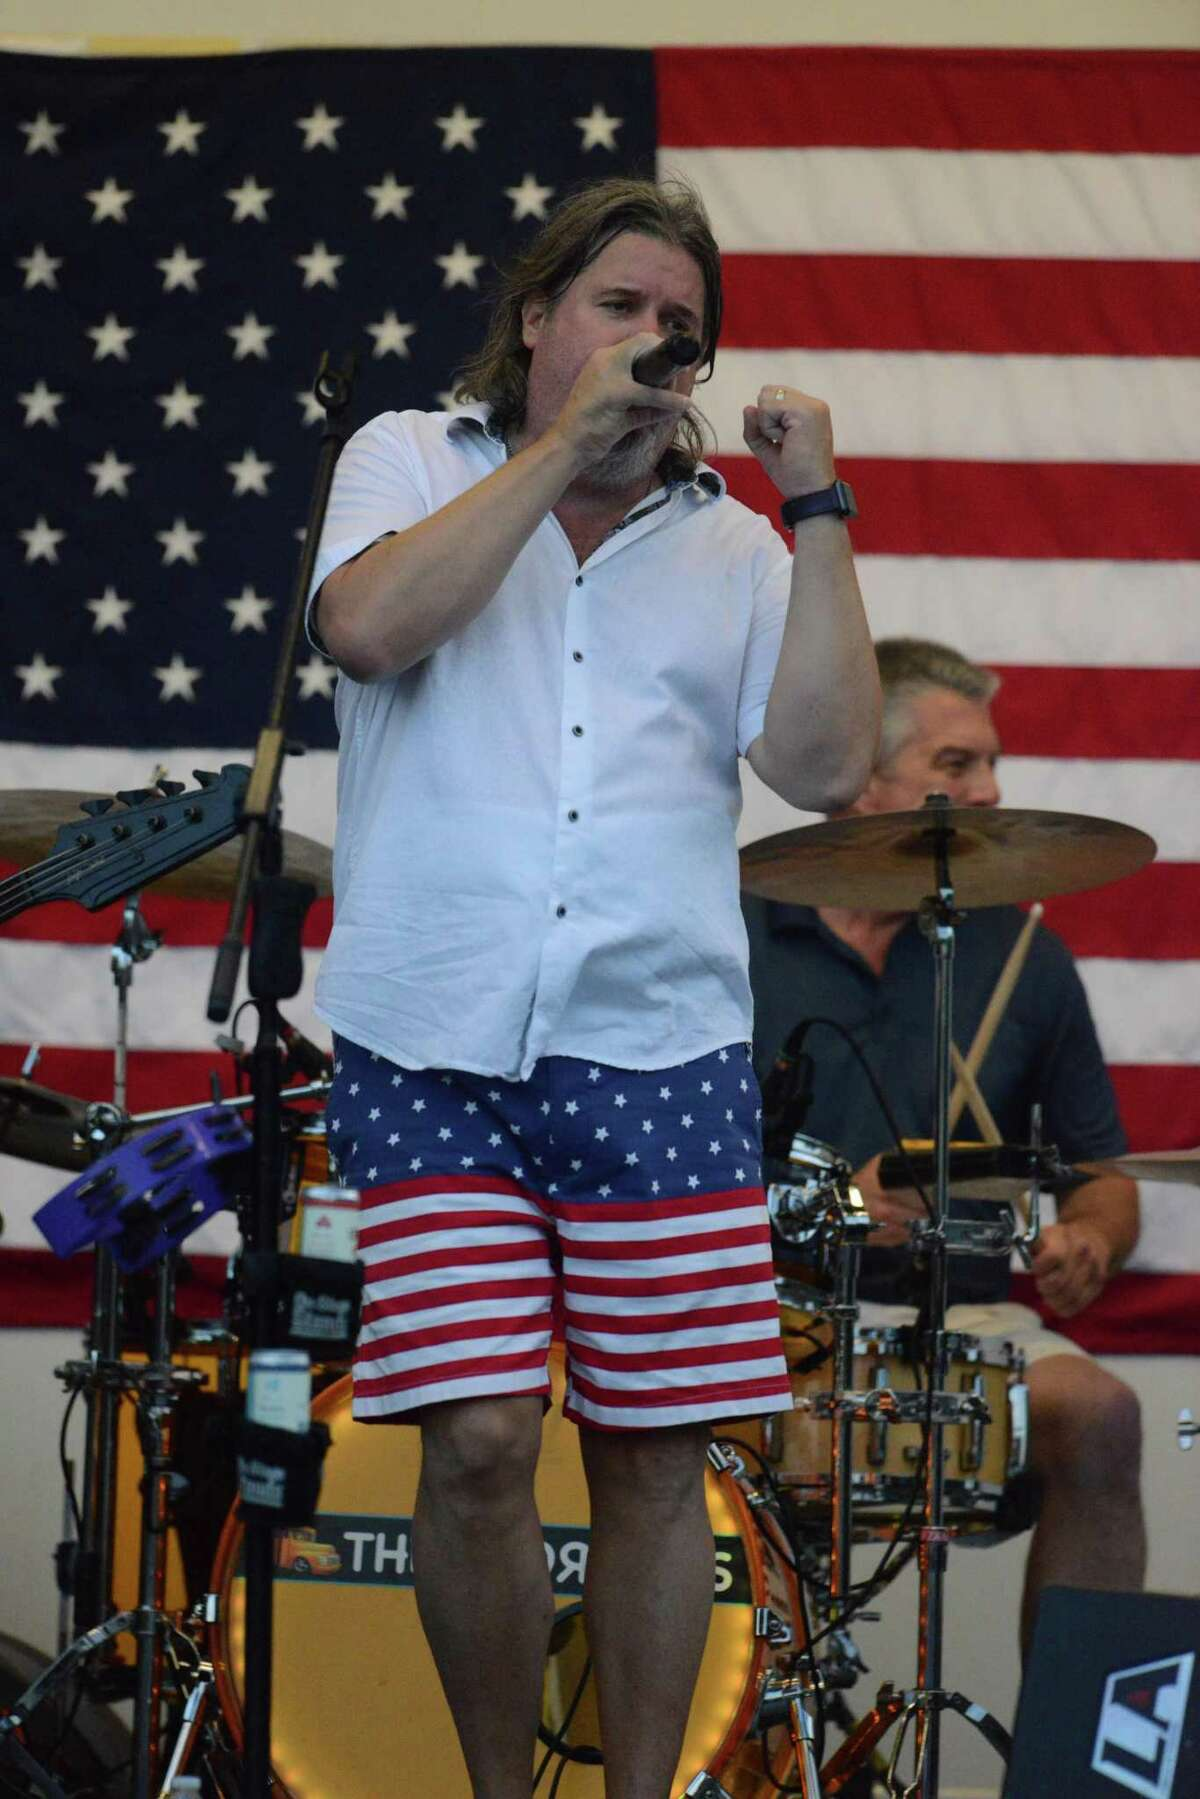 Mark Zelenz will perform on Greenwich Ave on June 4. Zelenz, who was born and raised in Cos Cob, plays a variety of music from classic rock to contemporary music and pop. He has been known as the lead singer of the Short Bus but has embarked on a solo career.